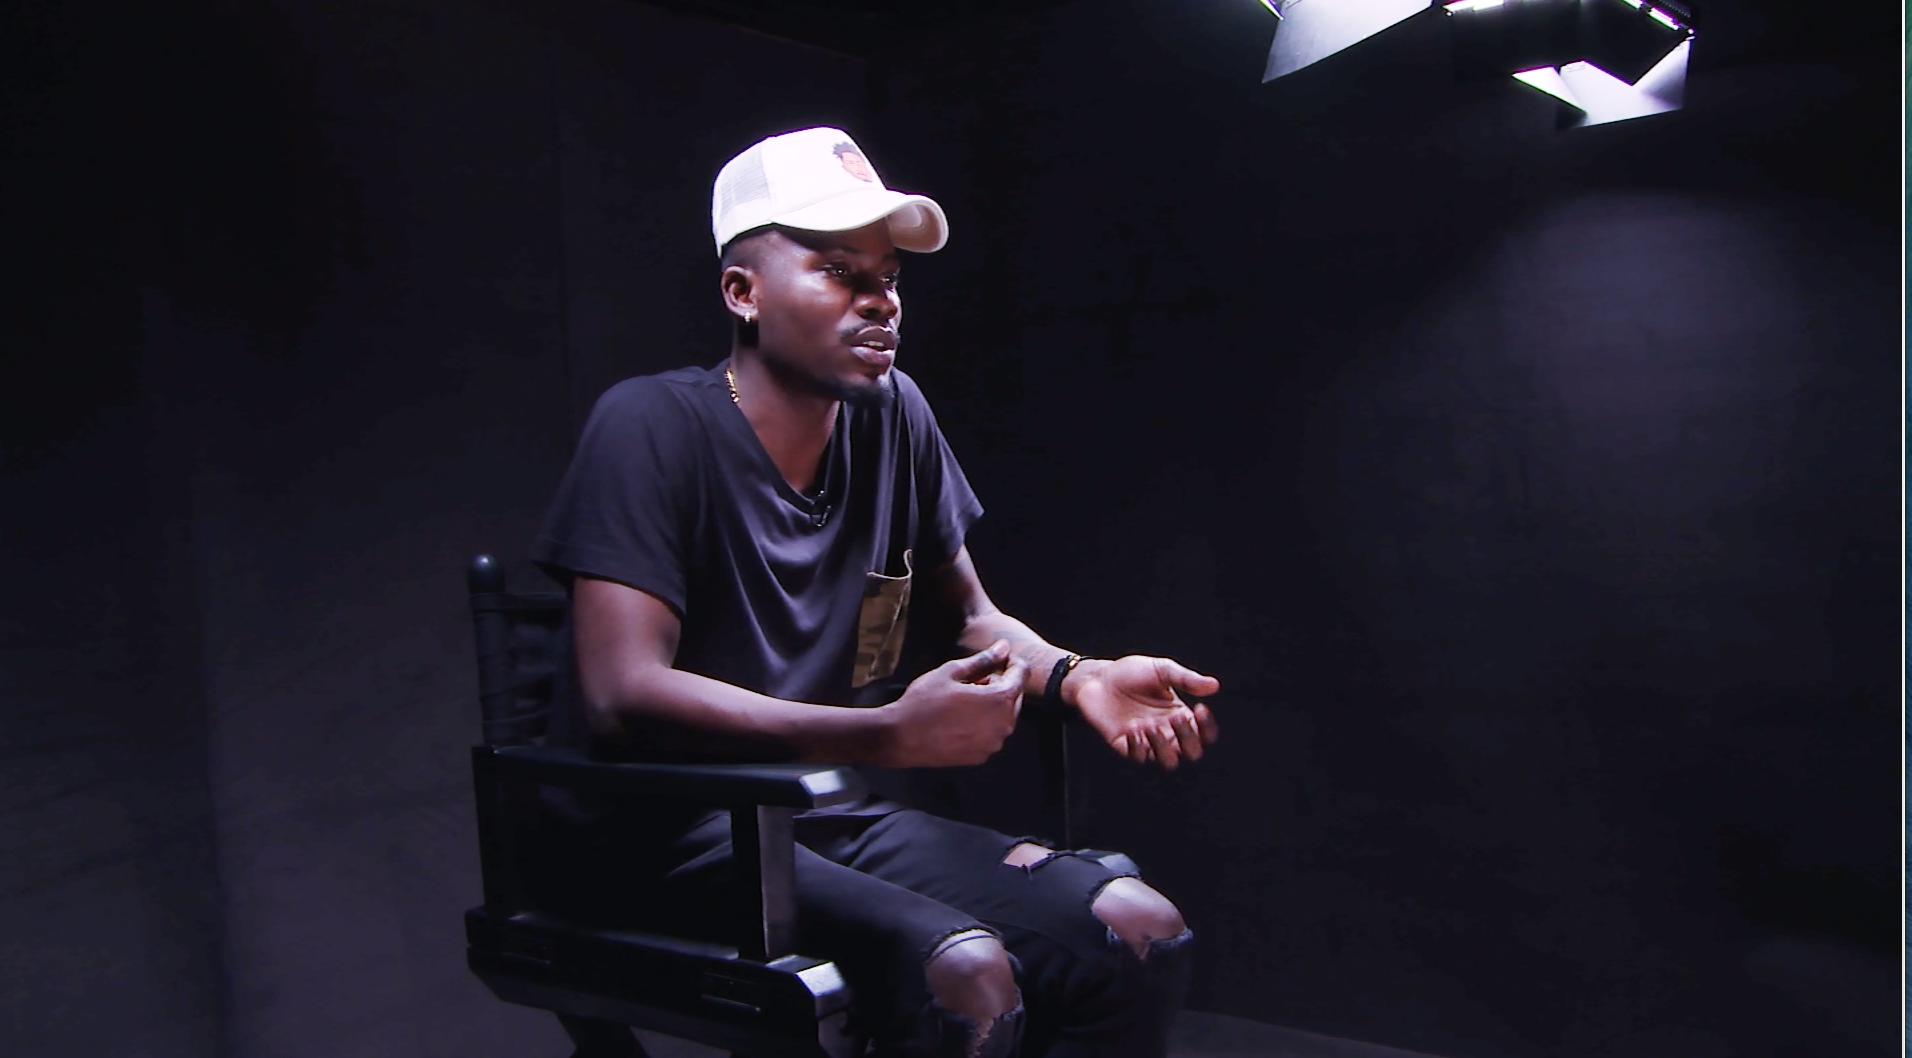 'If Not Music, (I'd Have Played) No. 9 Position at Manchester United' – YCEE | #SoundcityStarHost